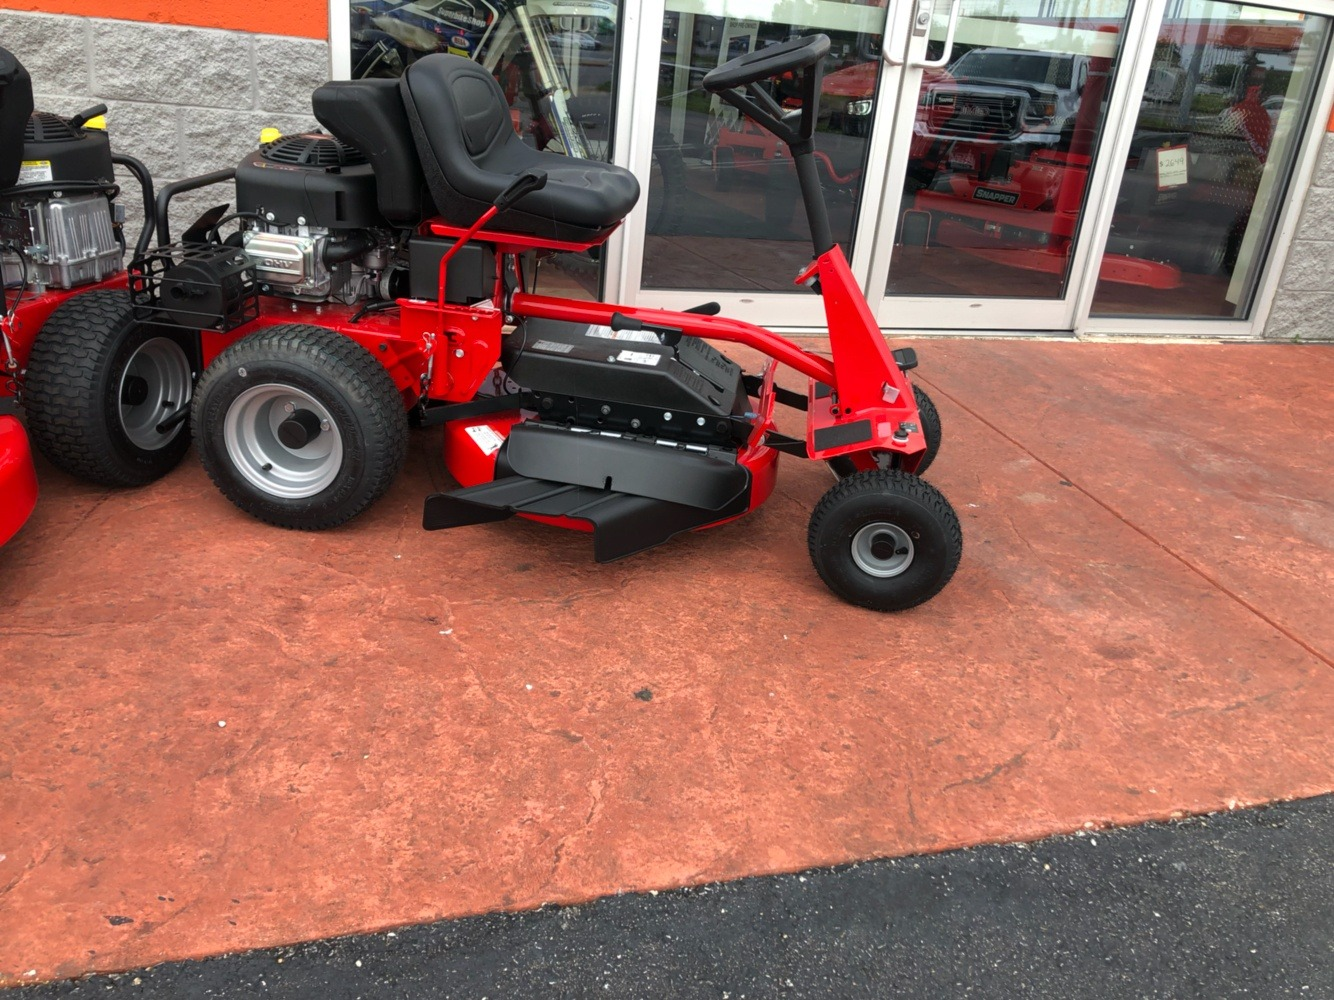 2019 Snapper Classic Rear Engine 33 in. Briggs & Stratton Intek 15.5 hp in Evansville, Indiana - Photo 5